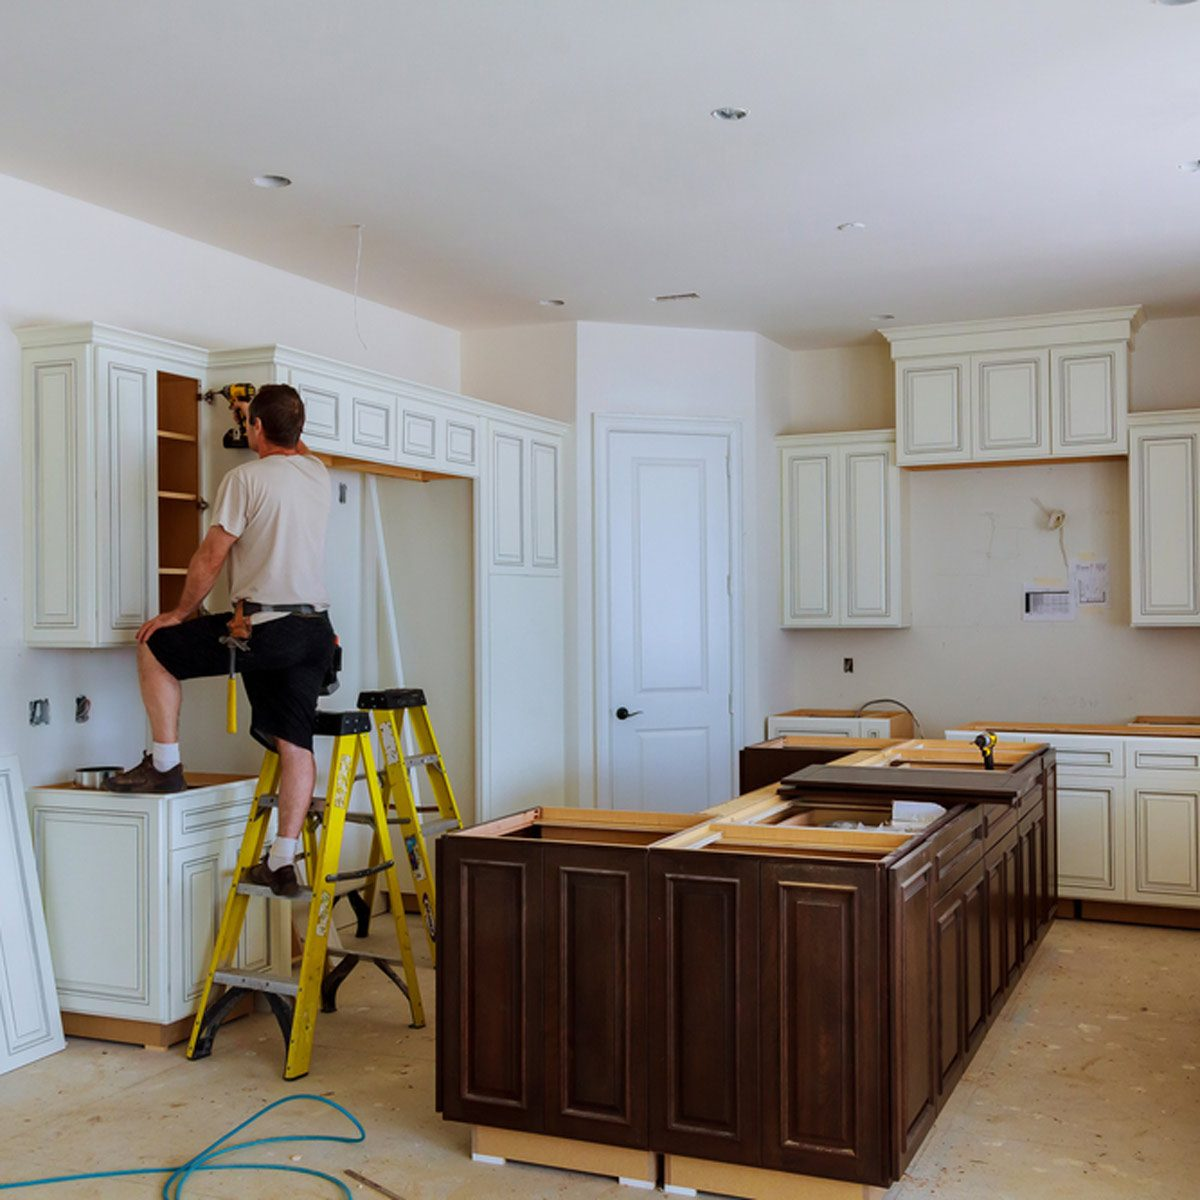 kitchen rehab outdoor lowes 10 things you should never do during a renovation the family handyman